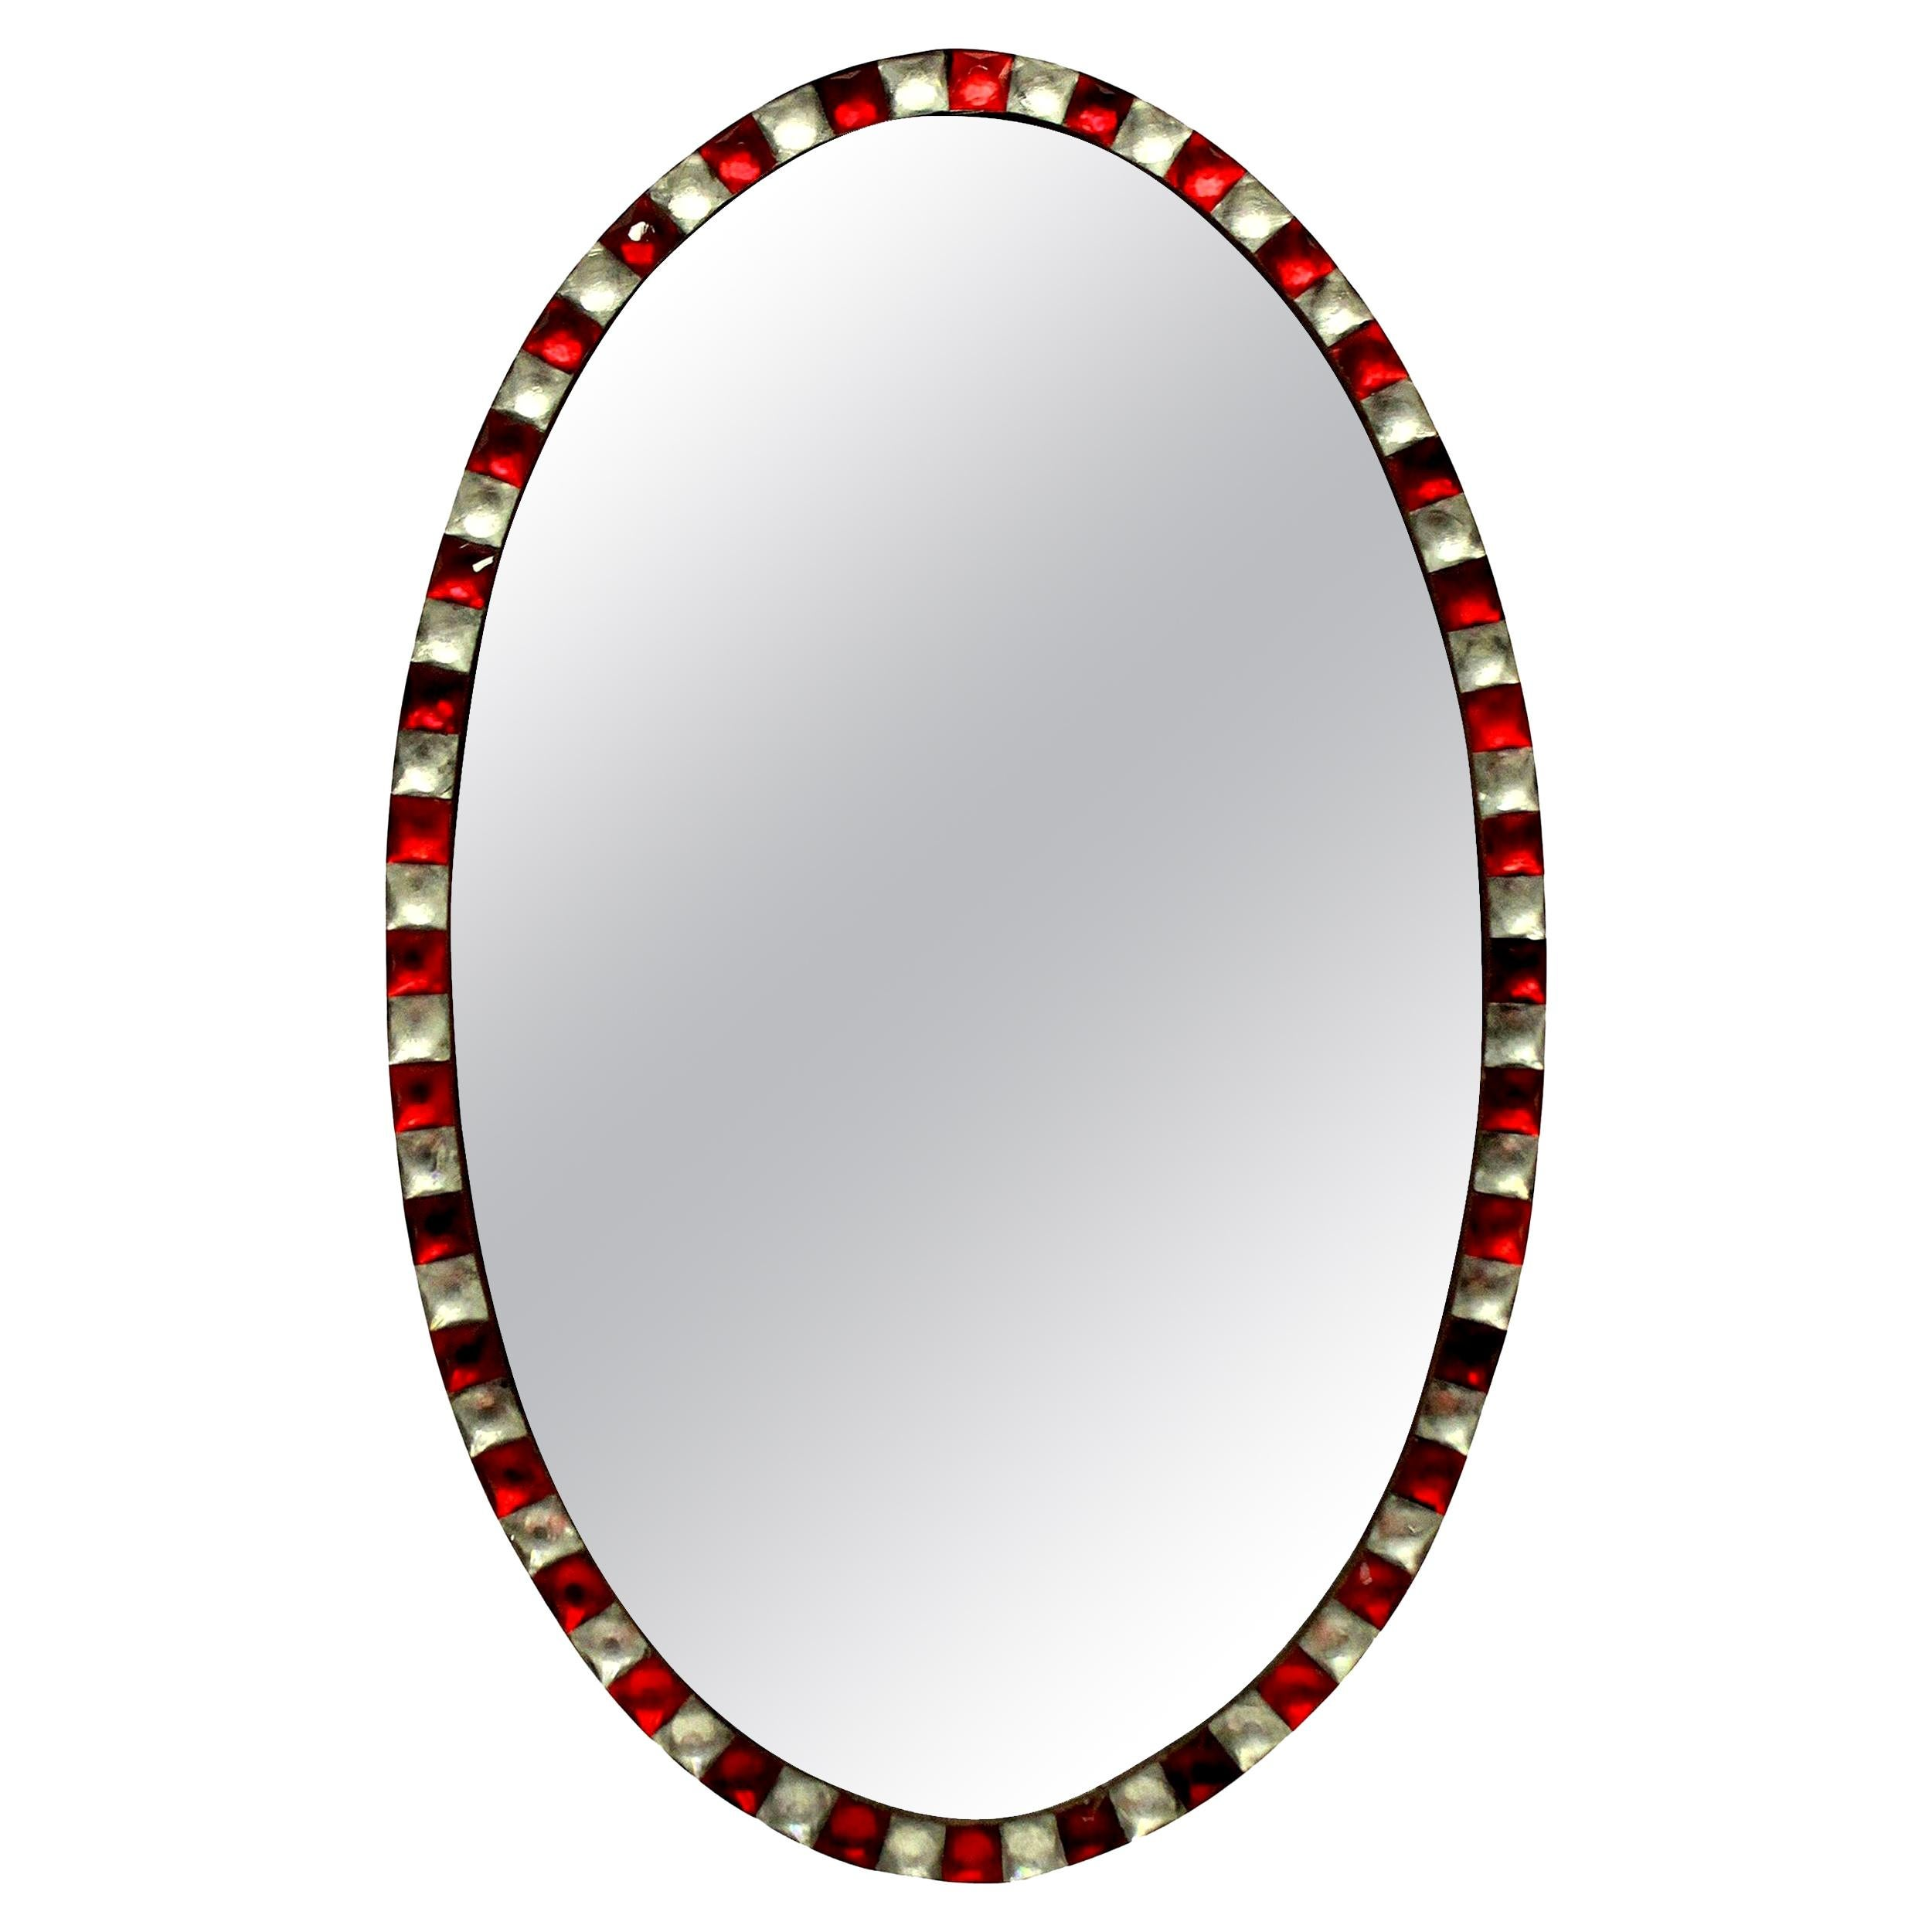 Georgian Style Irish Mirror with Ruby Glass and Rock Crystal Faceted Border